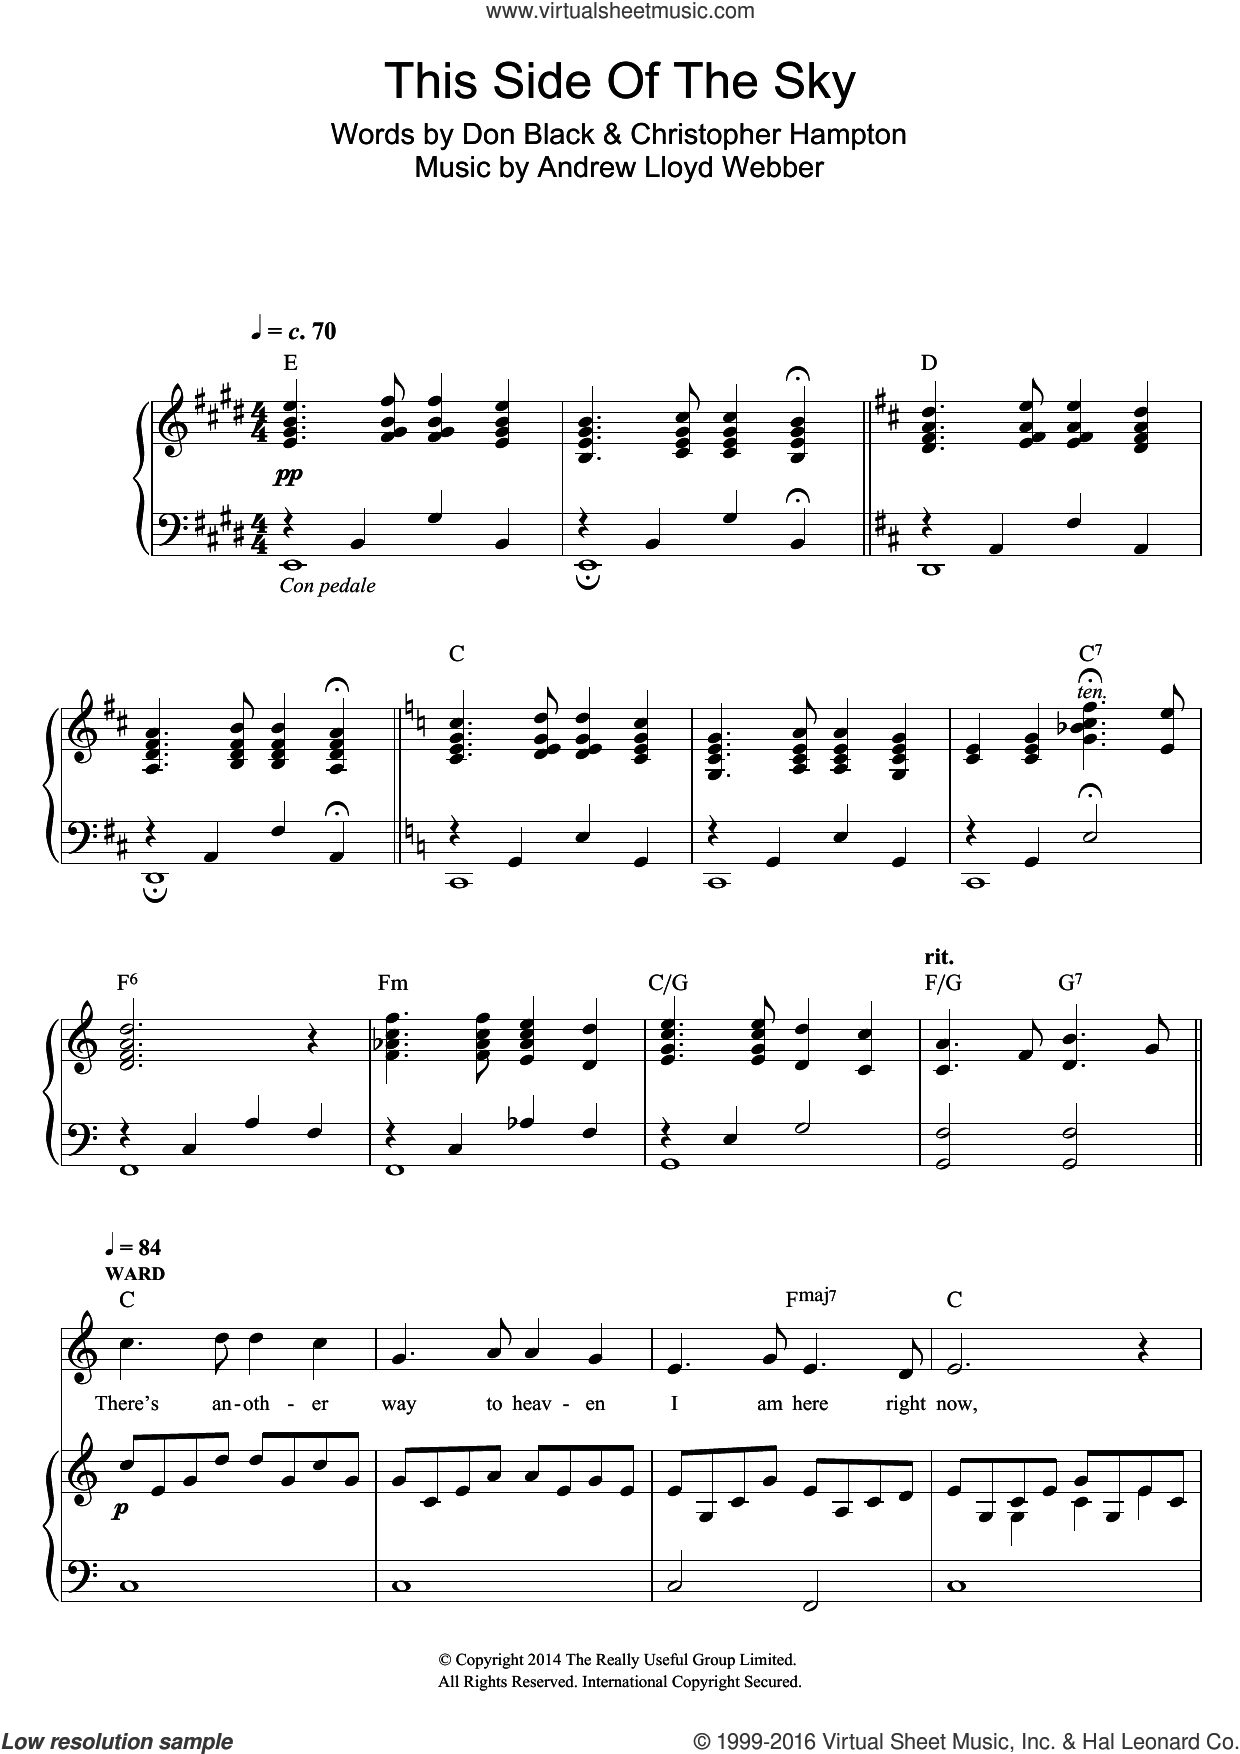 This Side Of The Sky (from 'Stpehen Ward') sheet music for voice and piano by Andrew Lloyd Webber and Don Black. Score Image Preview.